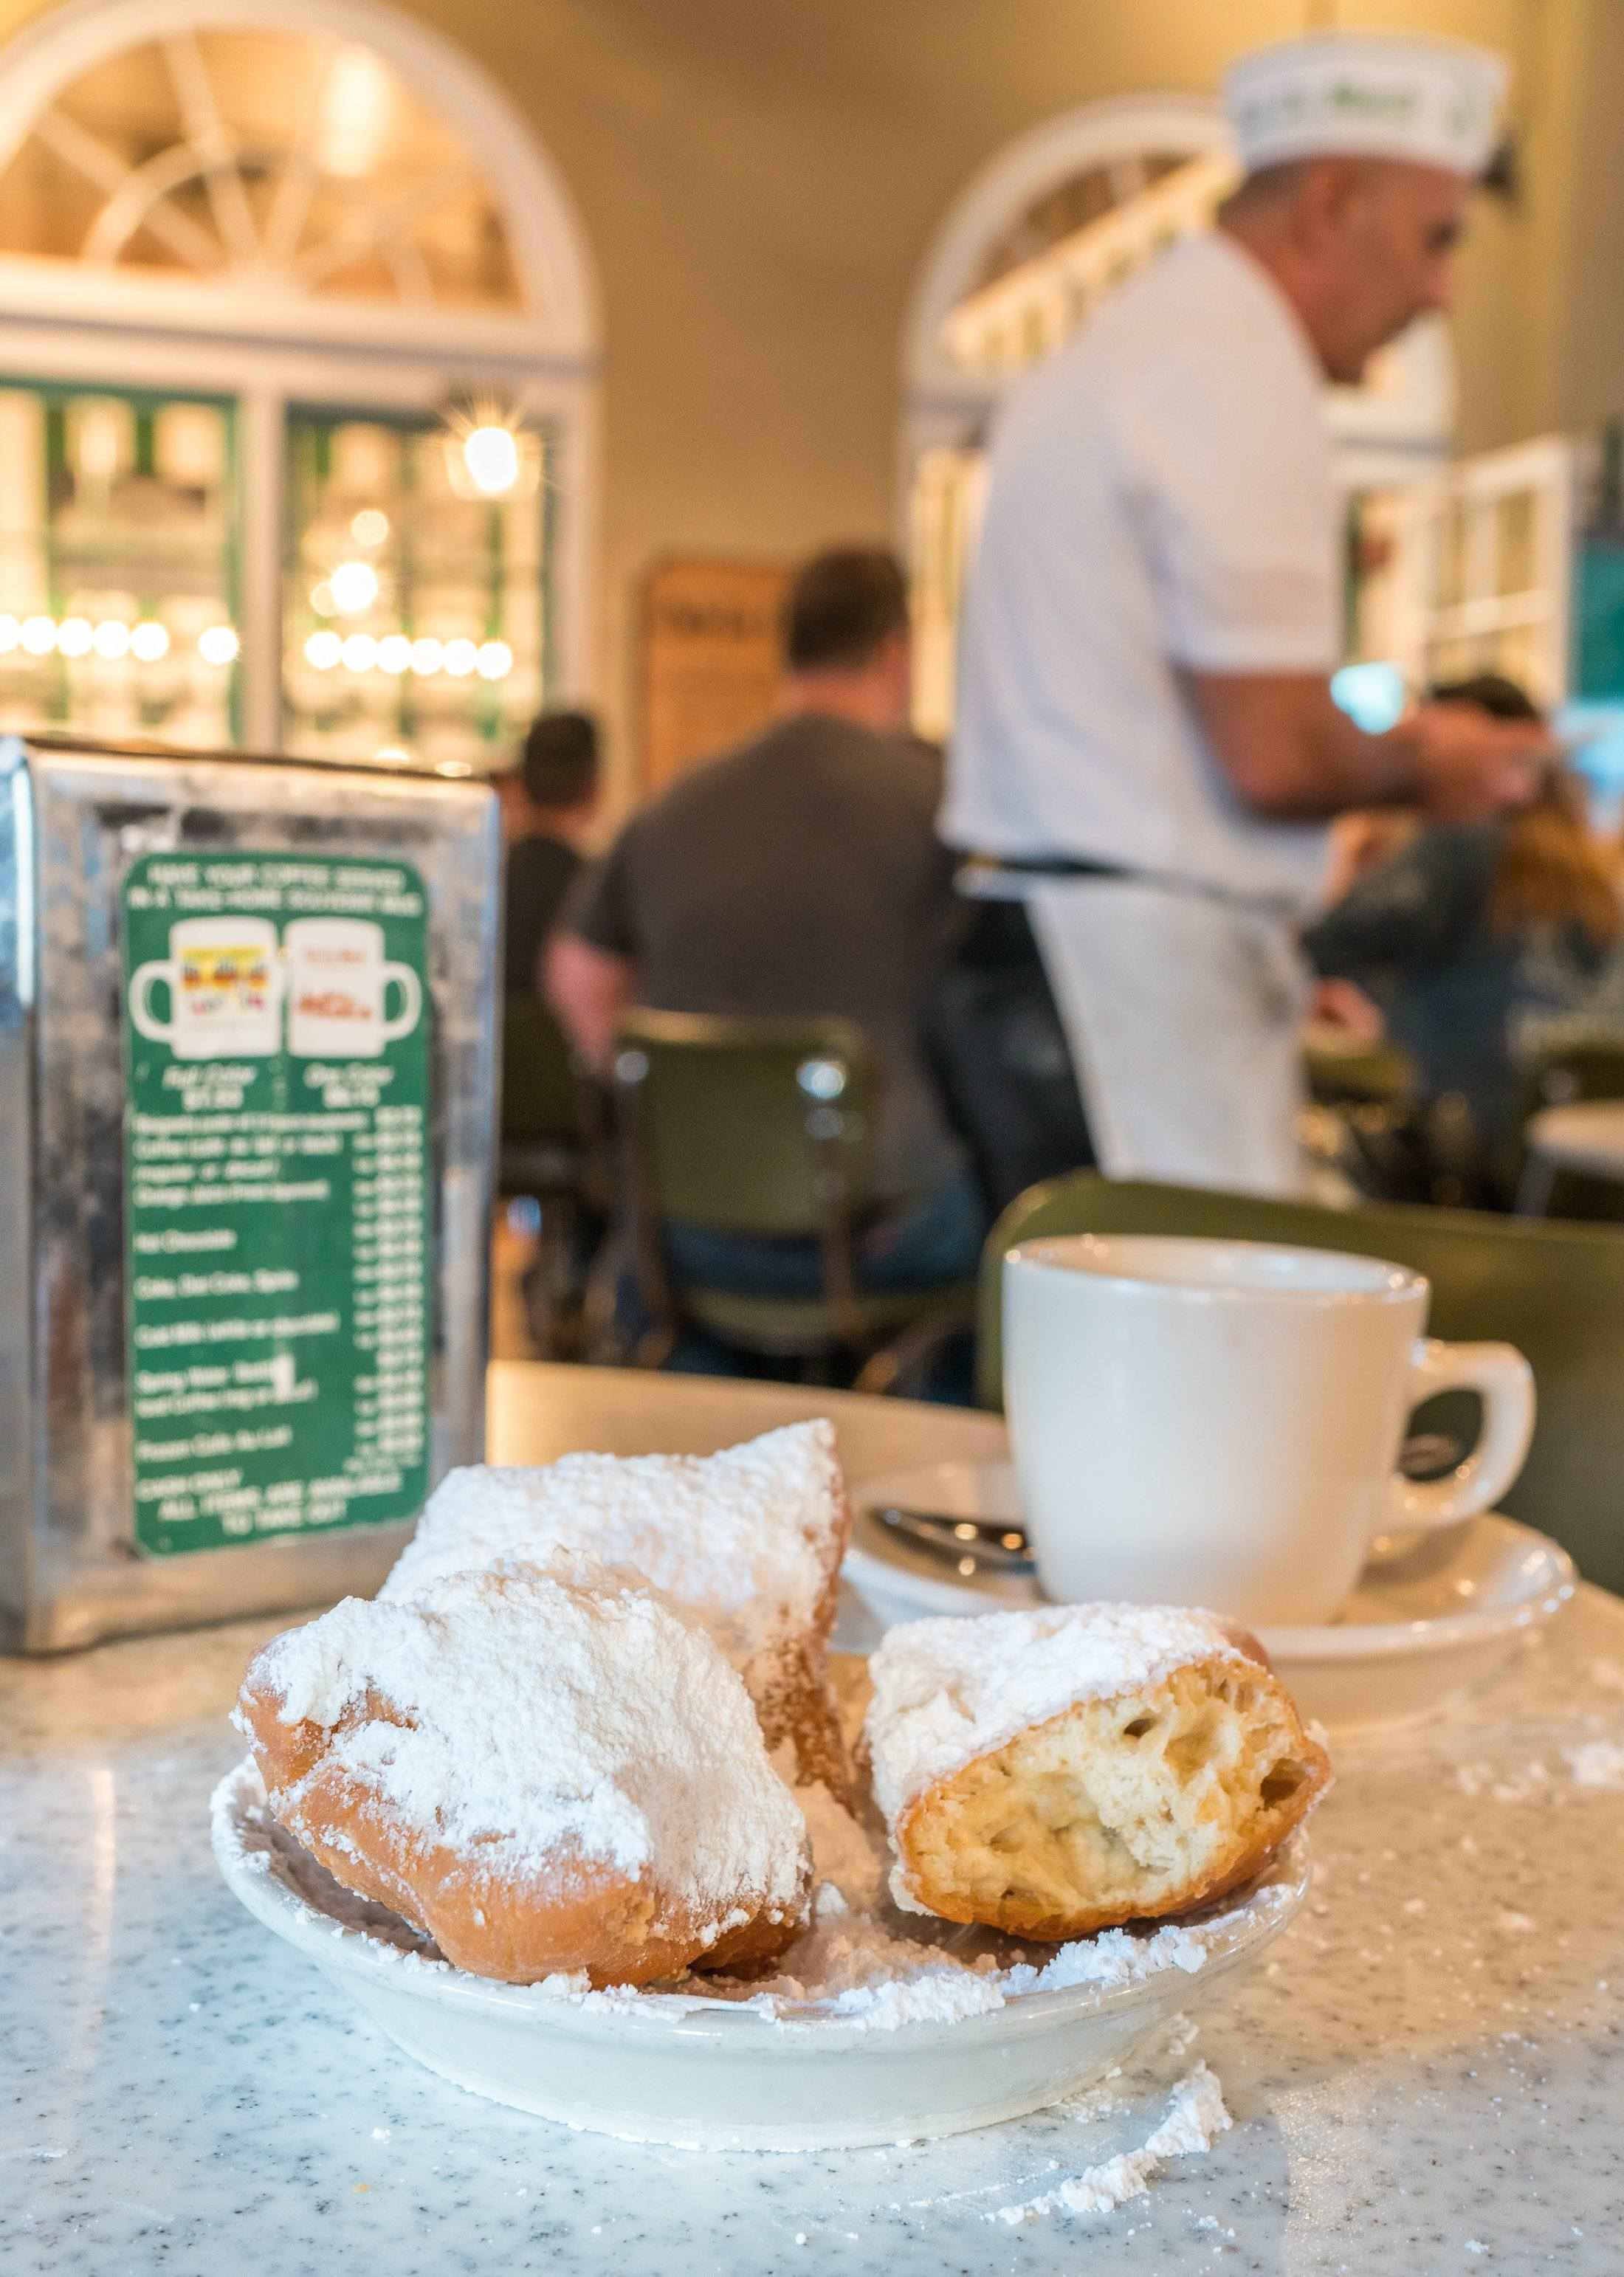 Beignets at Cafe du Monde are must-eat New Orleans foods.